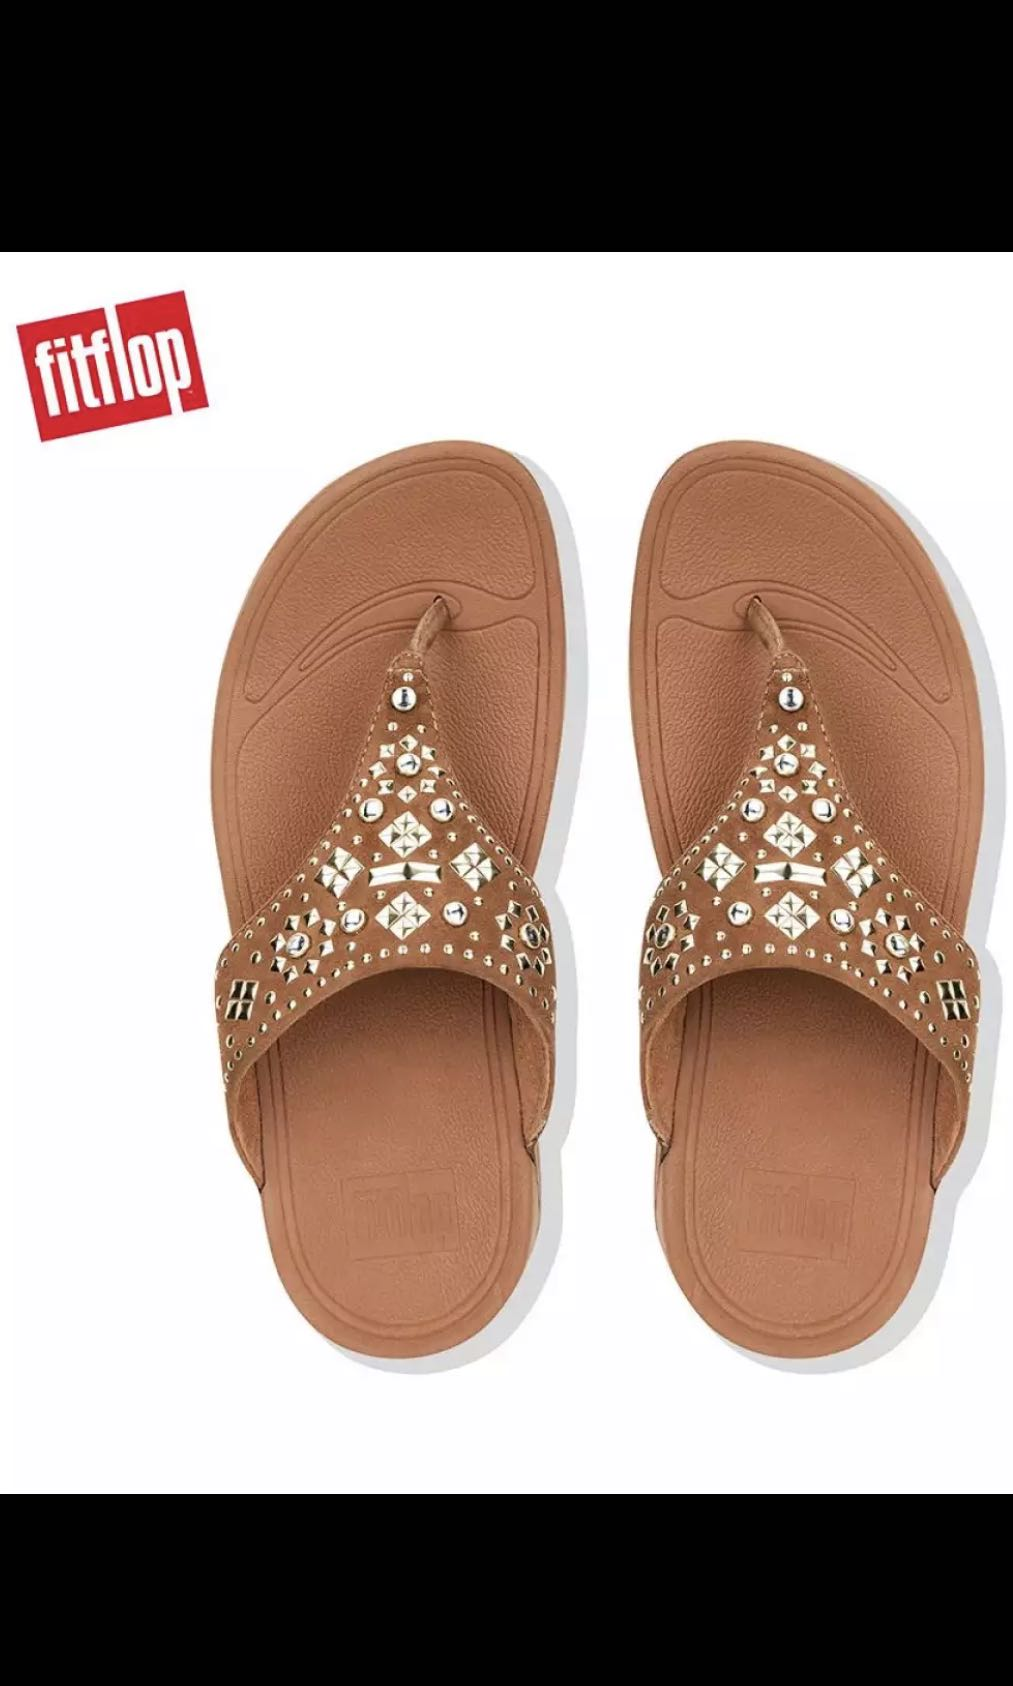 2896c1d14167 Fitflop Women s Sandals K50 LULU AZTEK STUD TOE THONG SANDALS ...